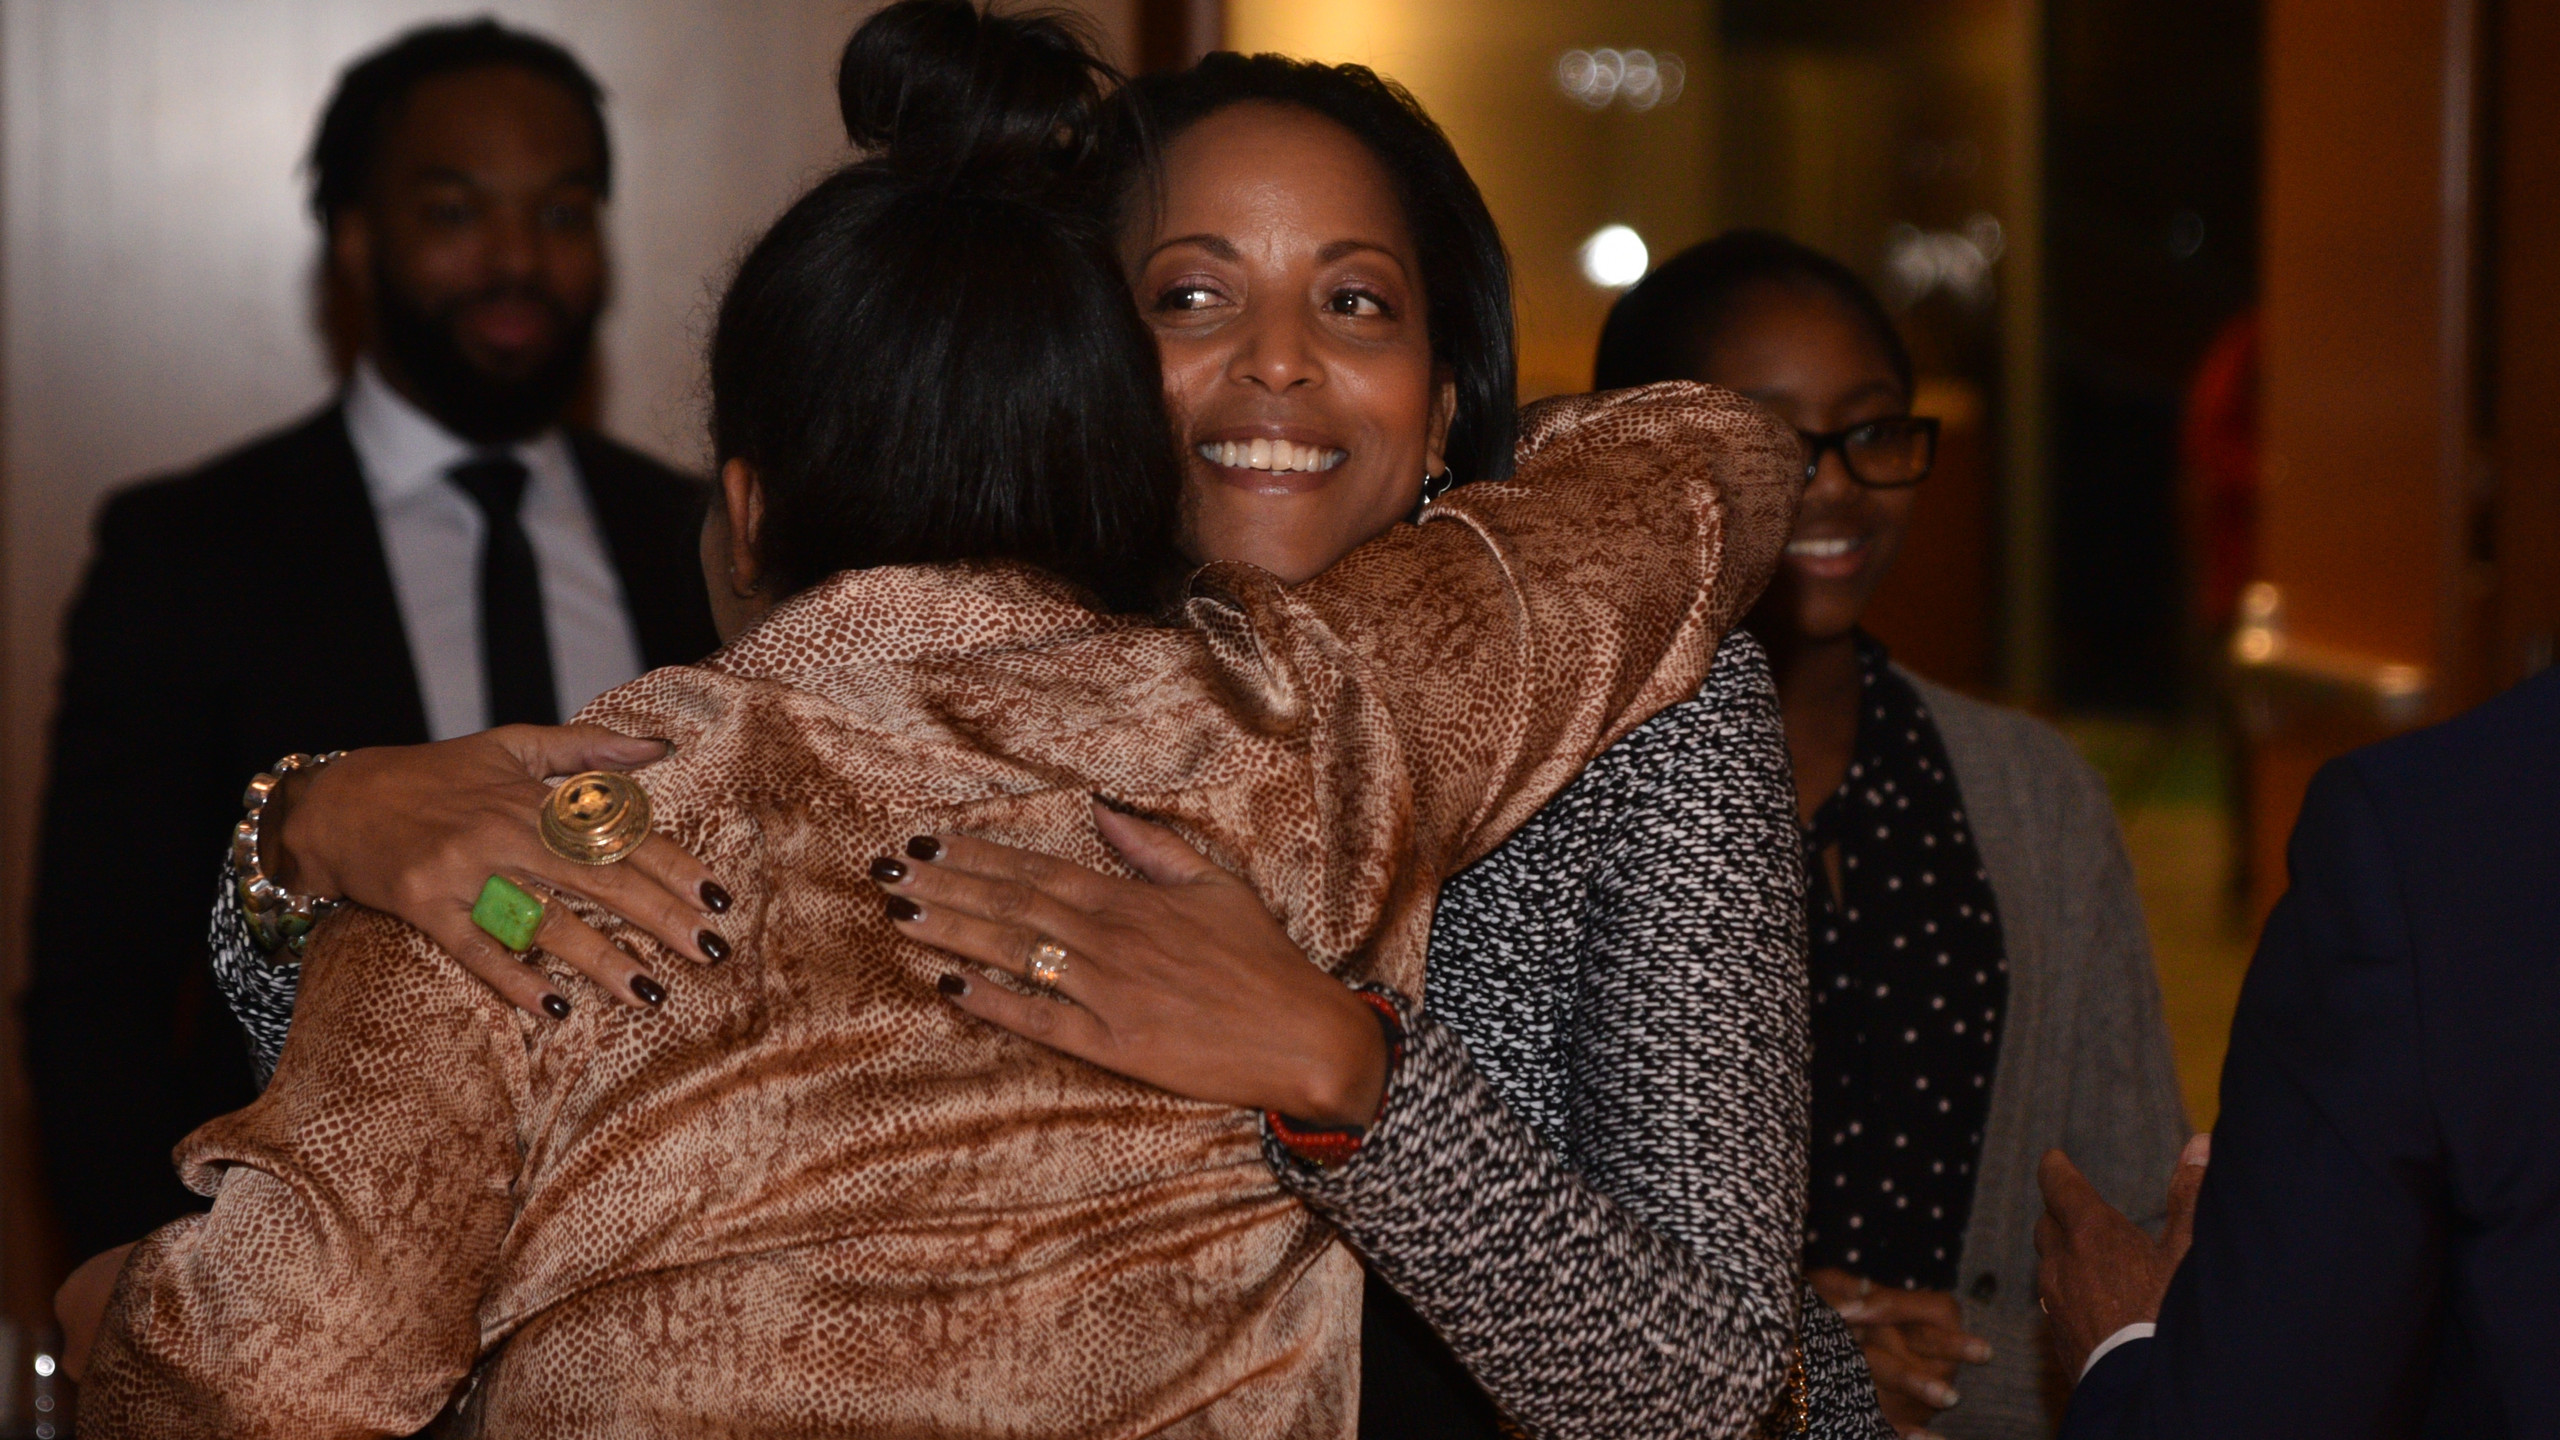 Two black women hugging at the event